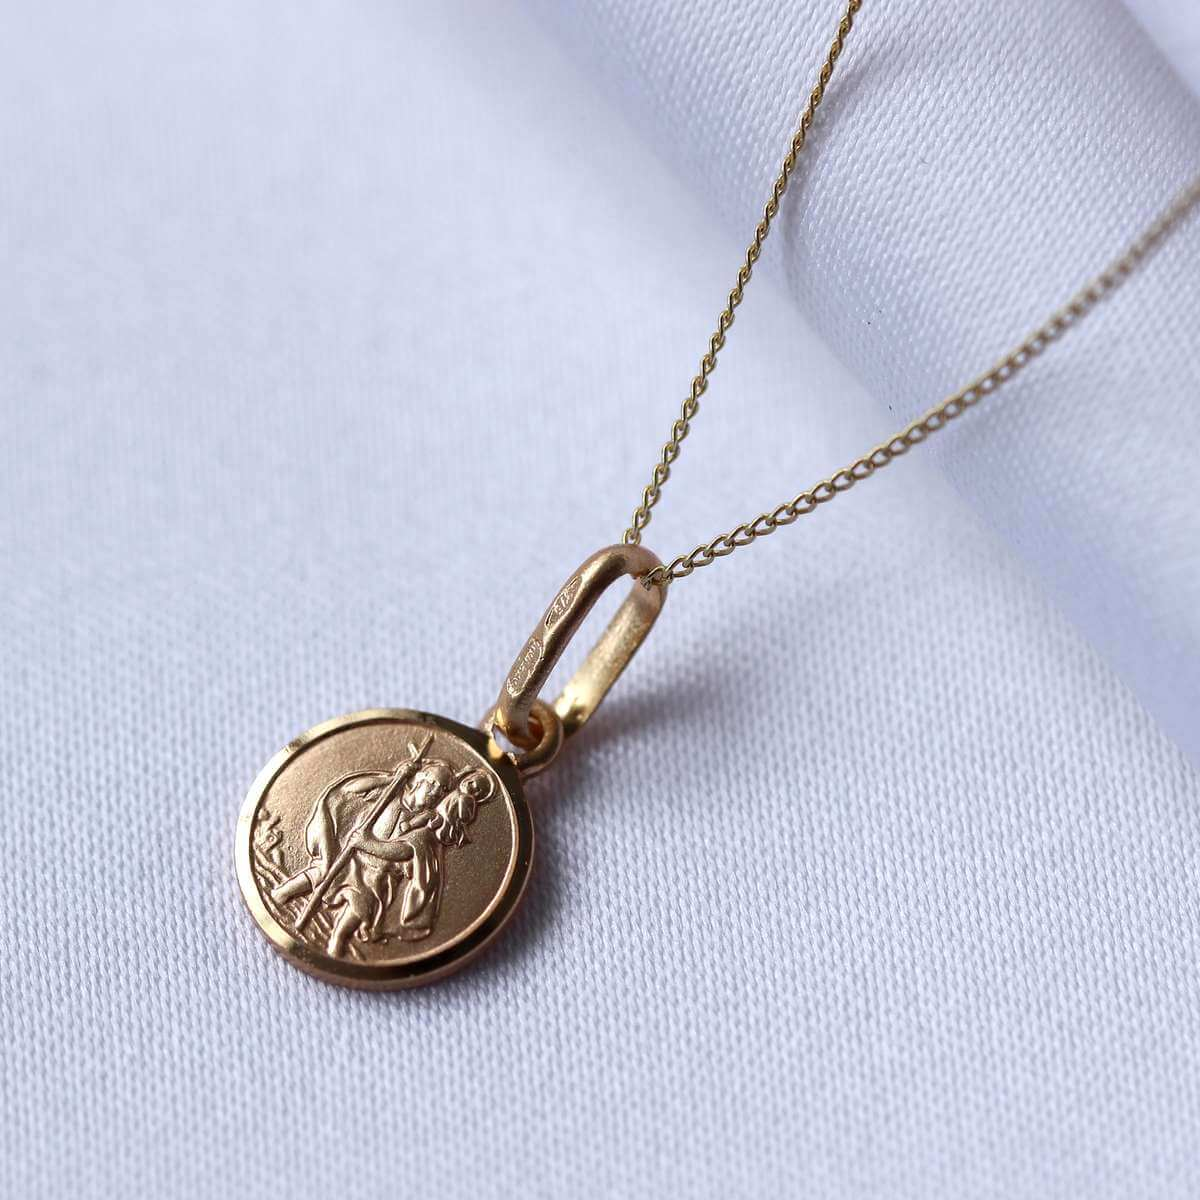 Small Round 9ct Gold St Christopher Necklace 16-22 Inches